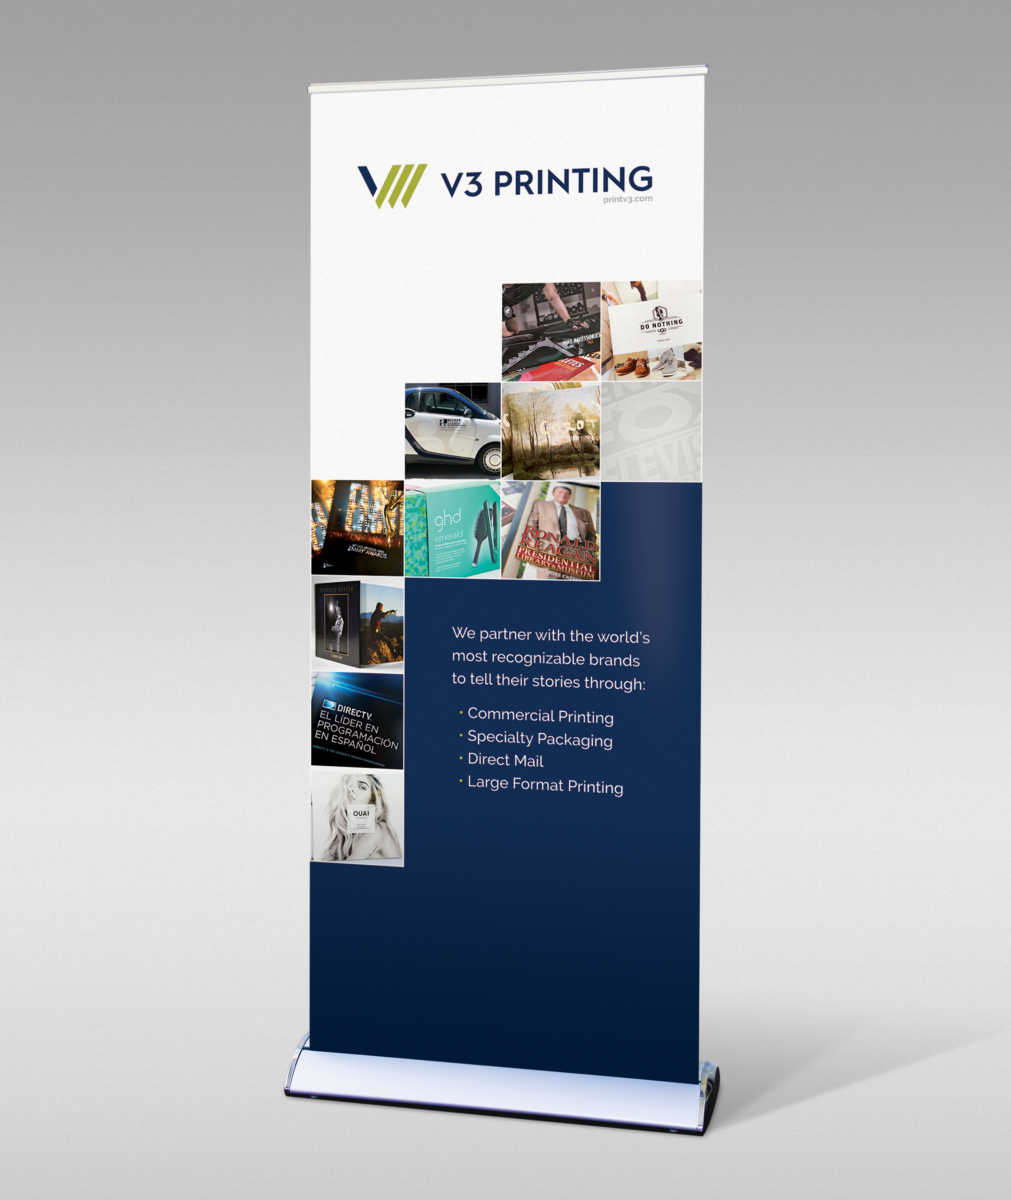 Travel Promotion Banners Medical Industry Banners